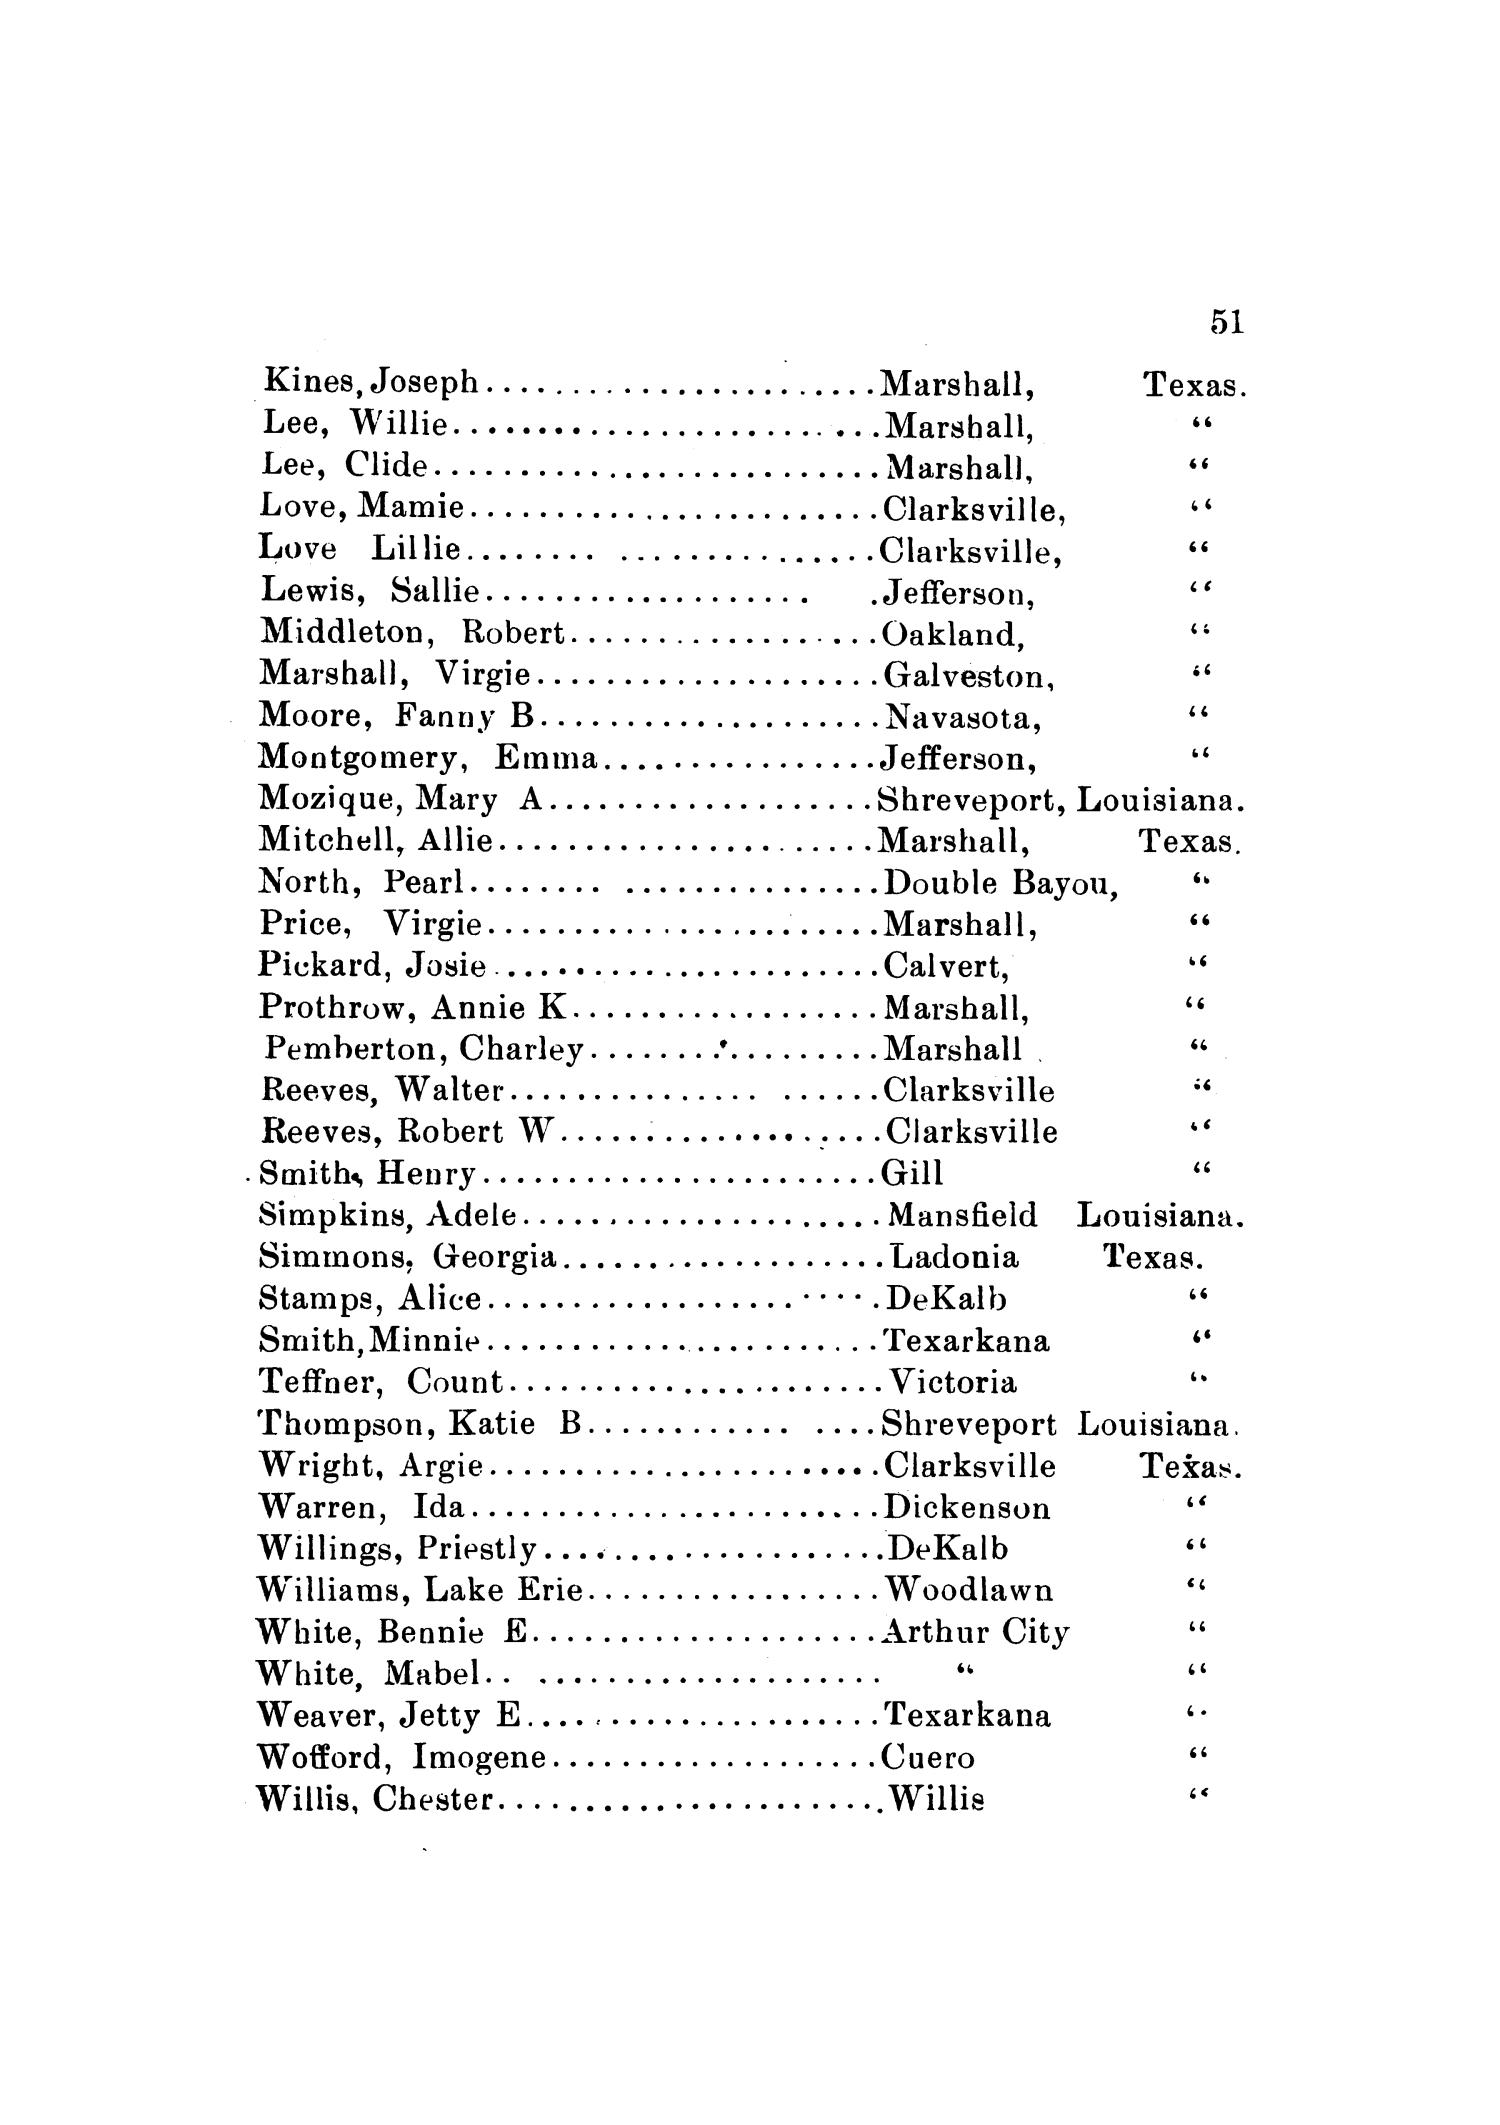 Yearbook of Wiley University, 1902                                                                                                      51